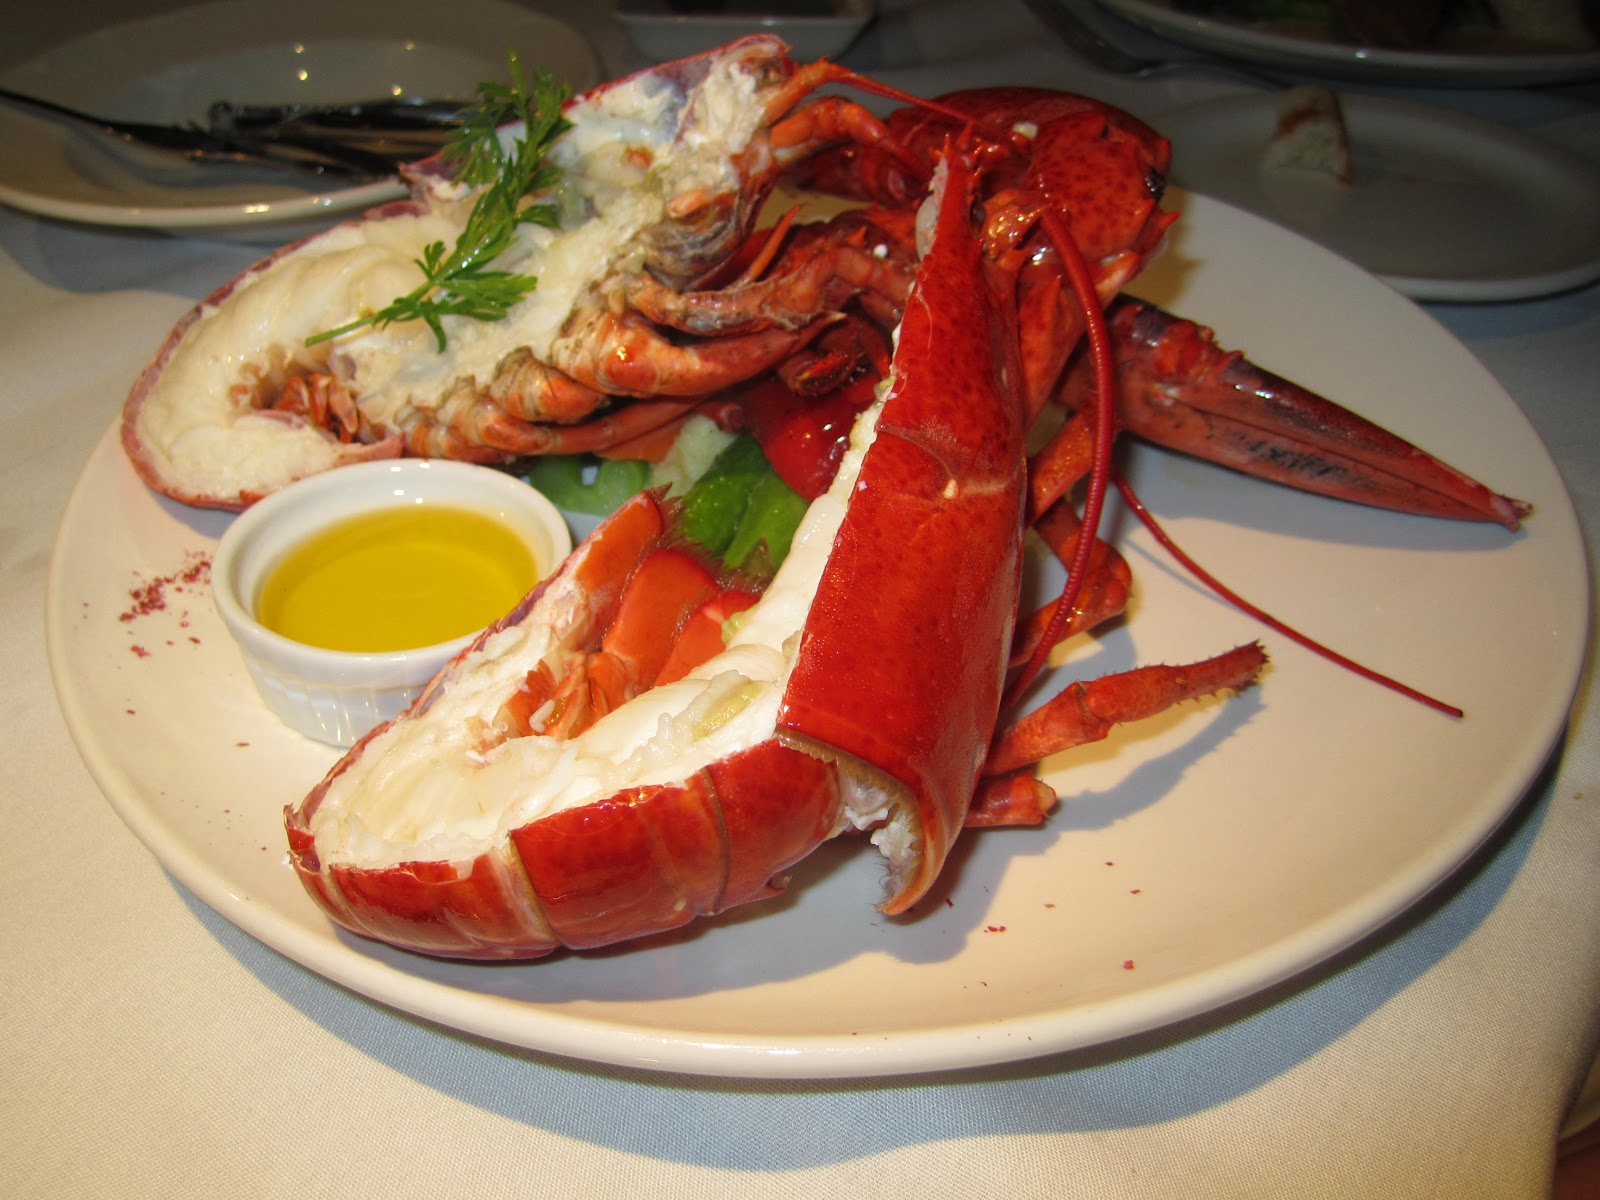 243 reviews of Lazy Lobster Outstanding food Our visit started off great and continued great for our entire visit We called earlier for reservations and when we